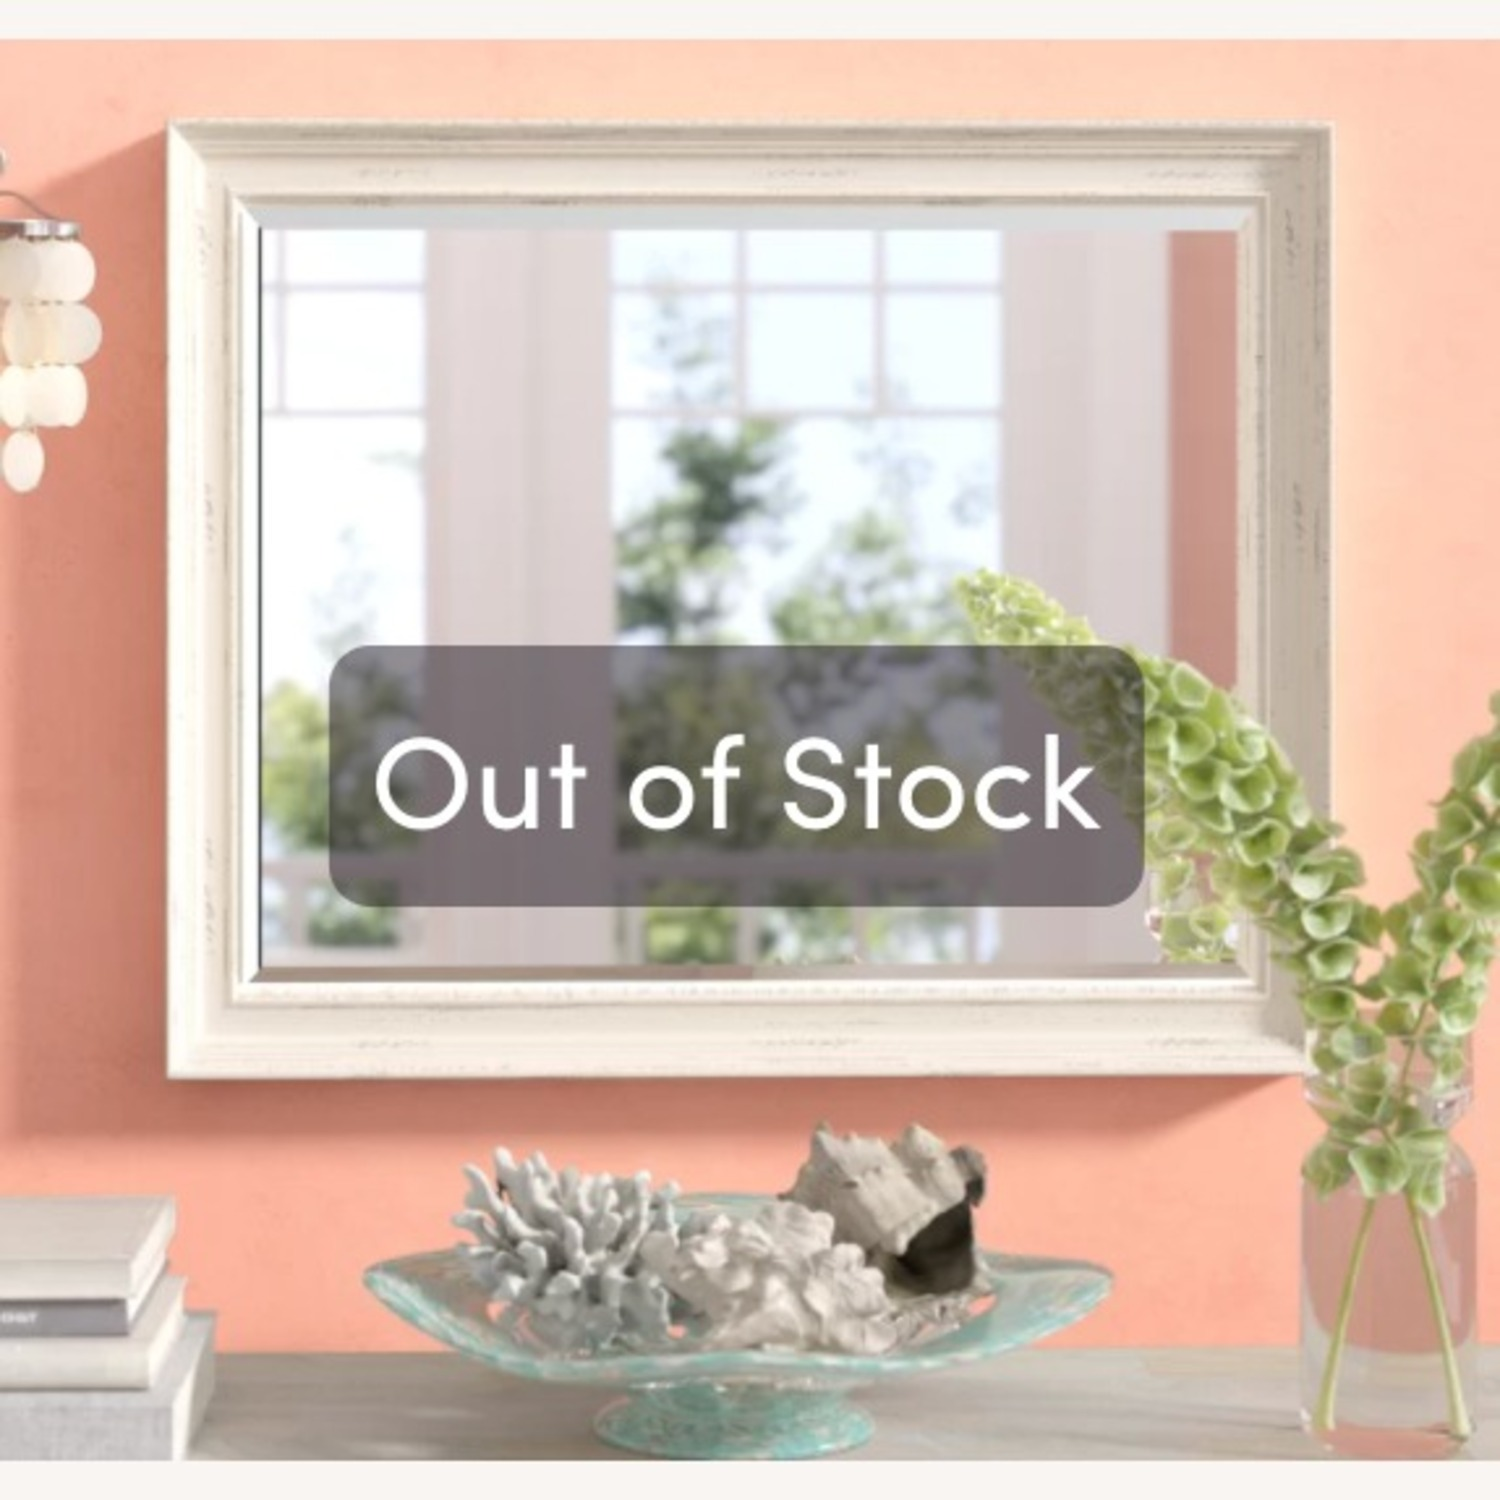 Wayfair White Speckled Wood Wall Mirror - image-2